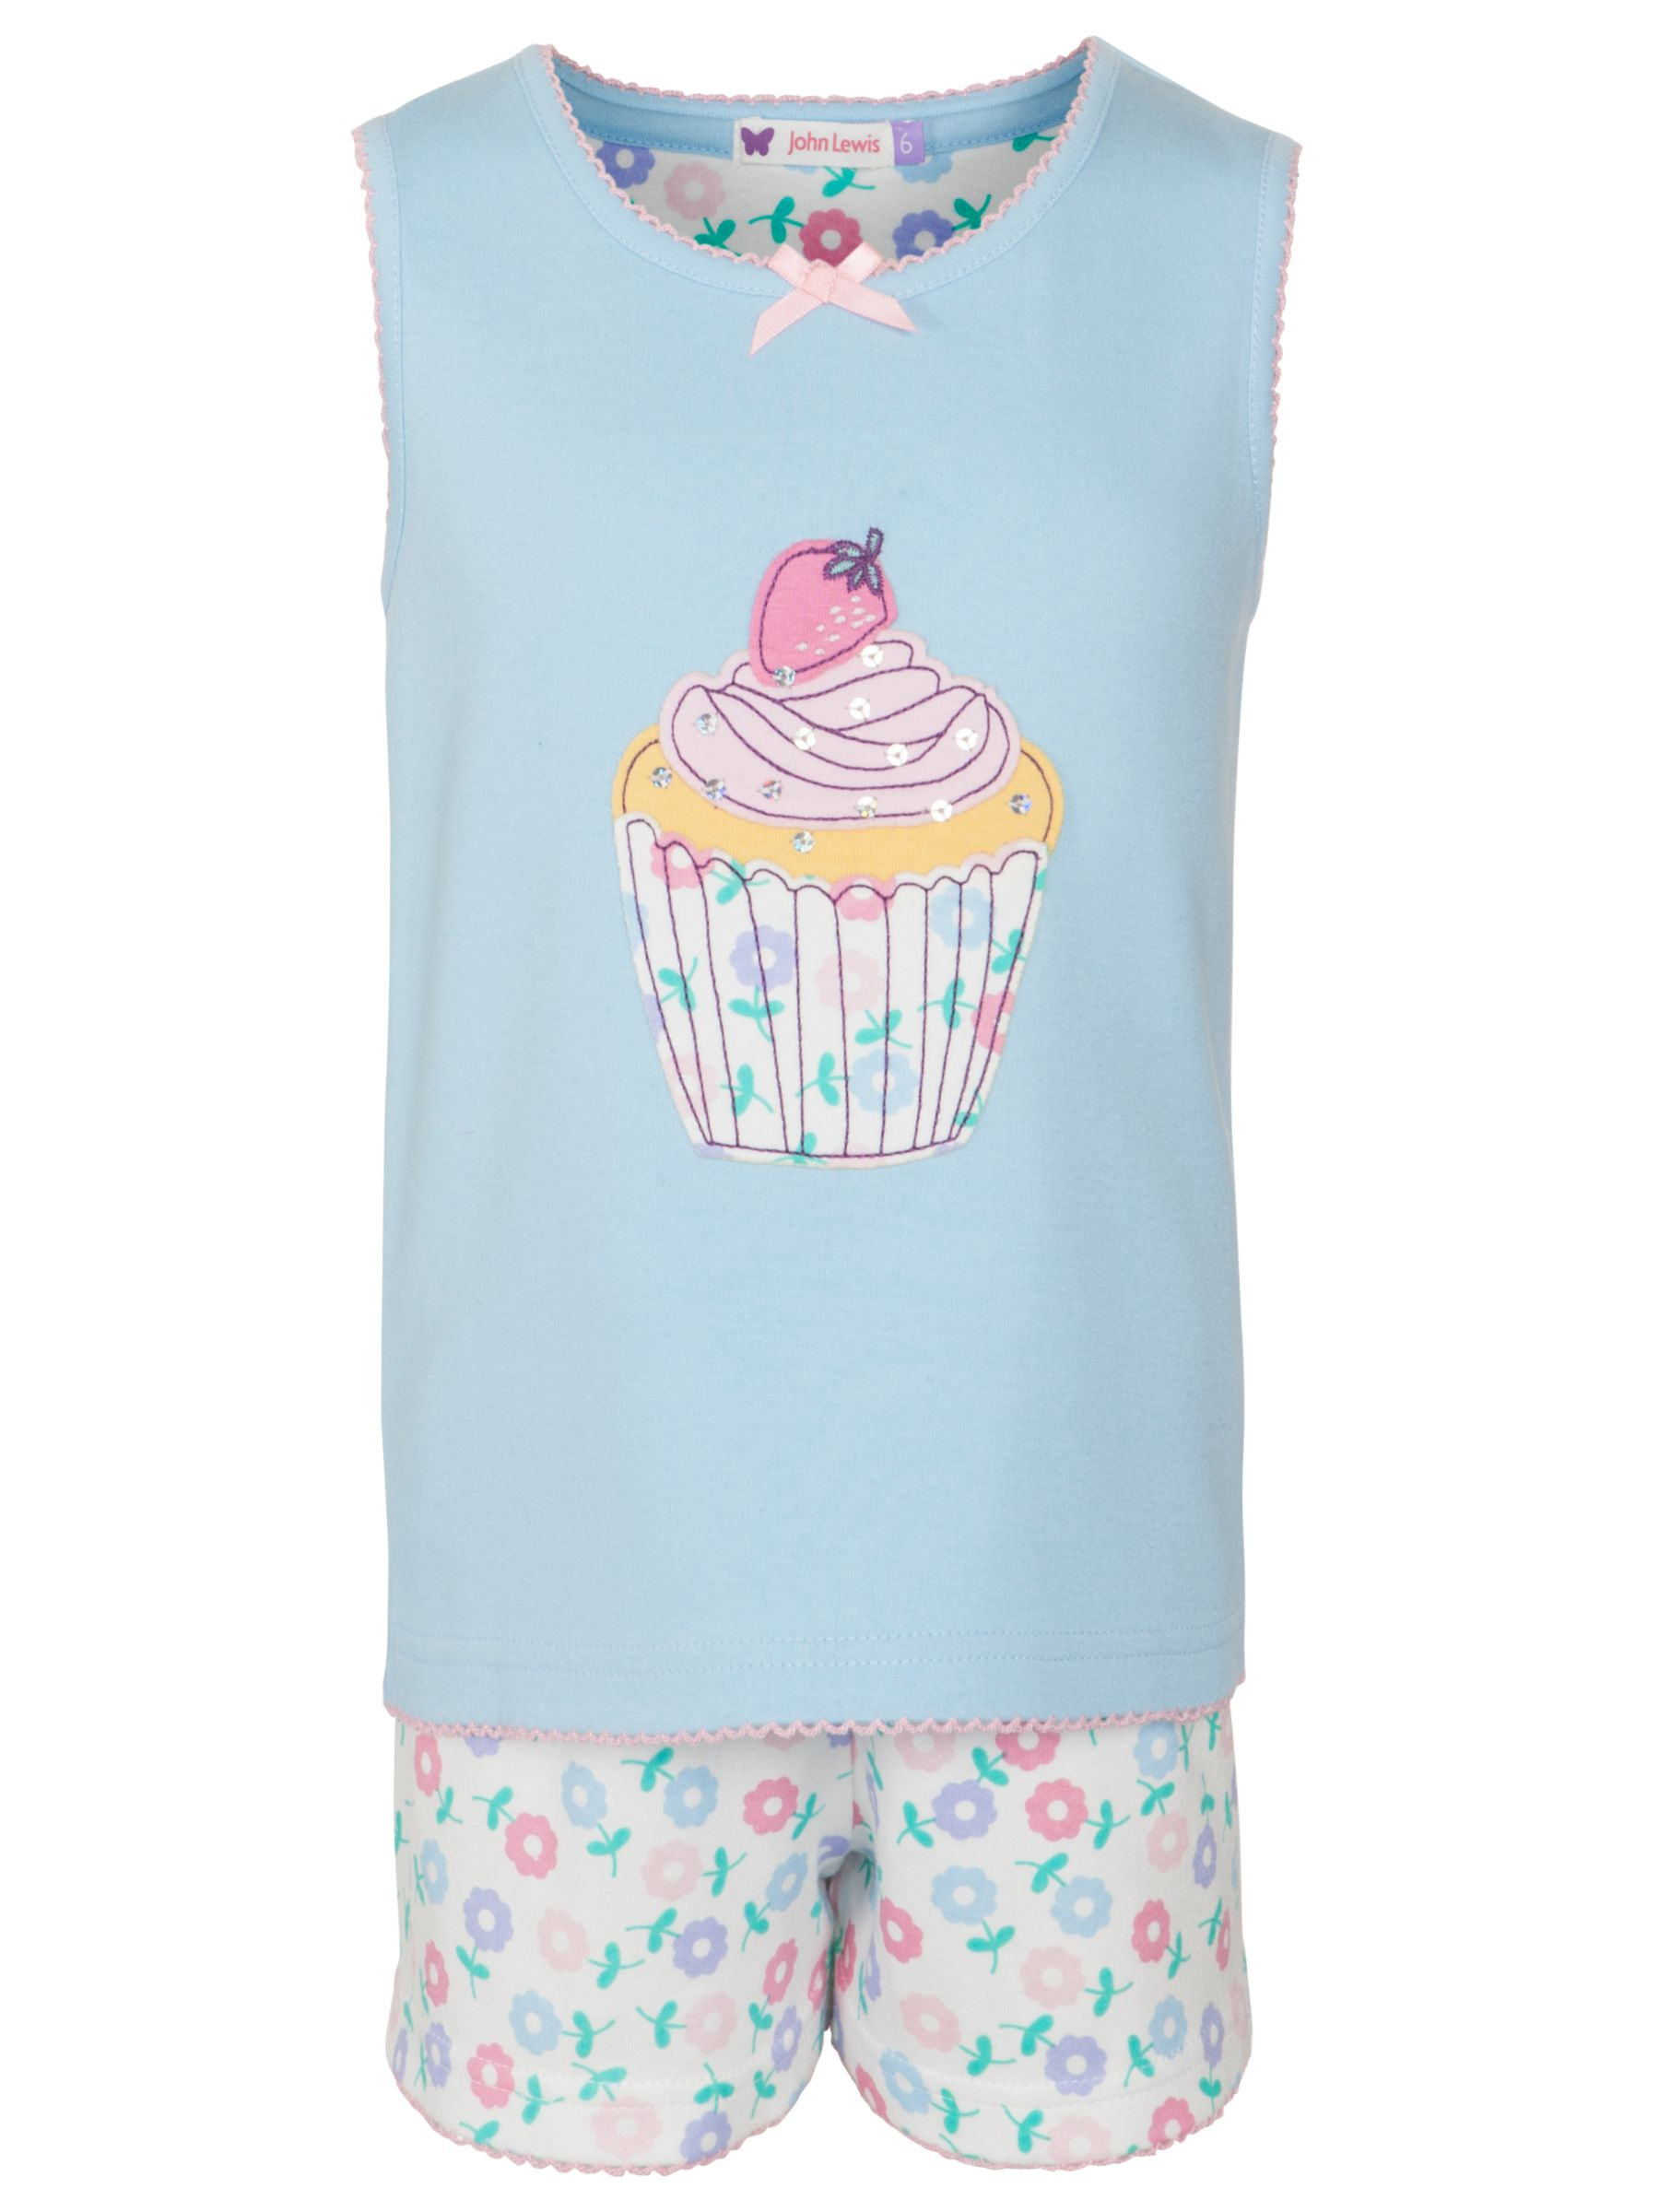 John Lewis Girl Cupcake Print Pyjamas, Light Blue